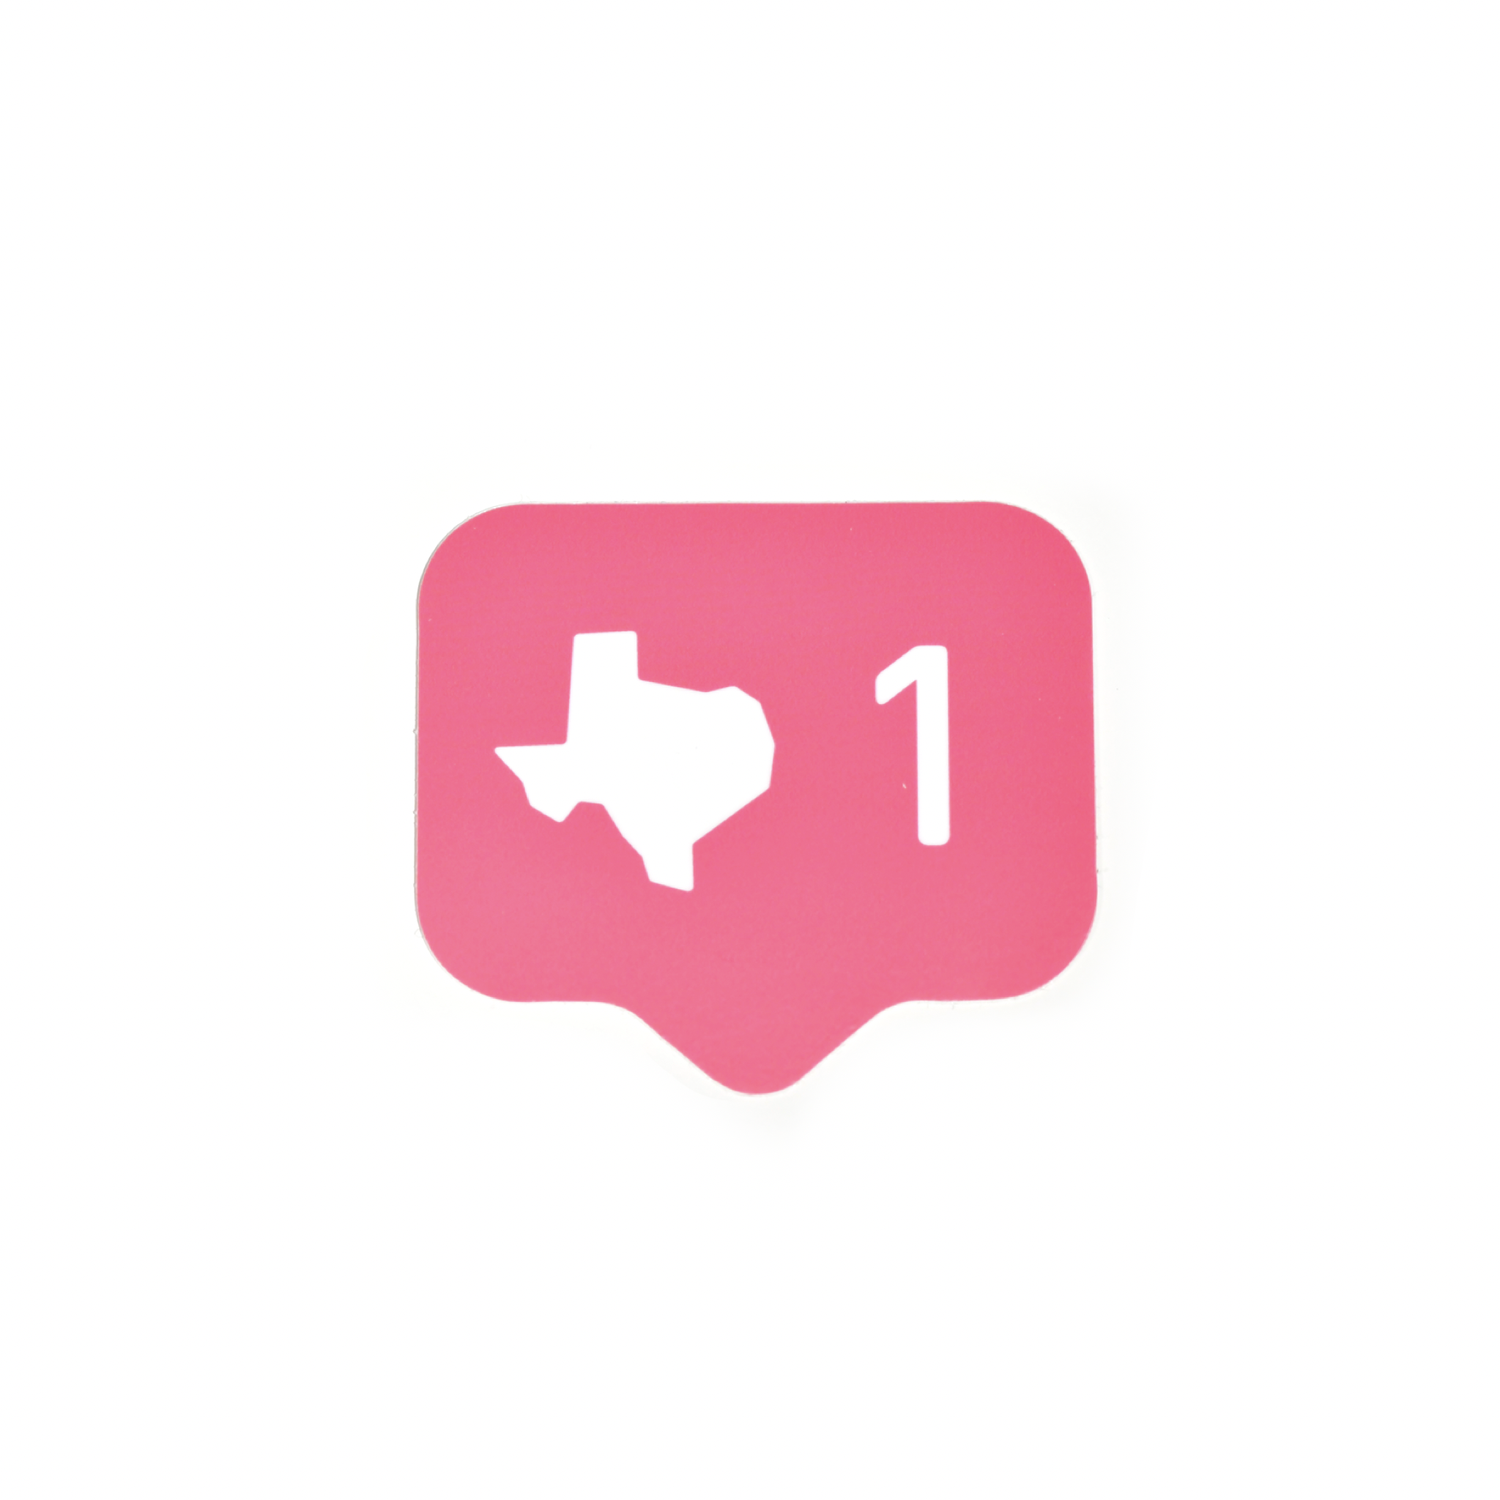 Image of Texas Love sticker